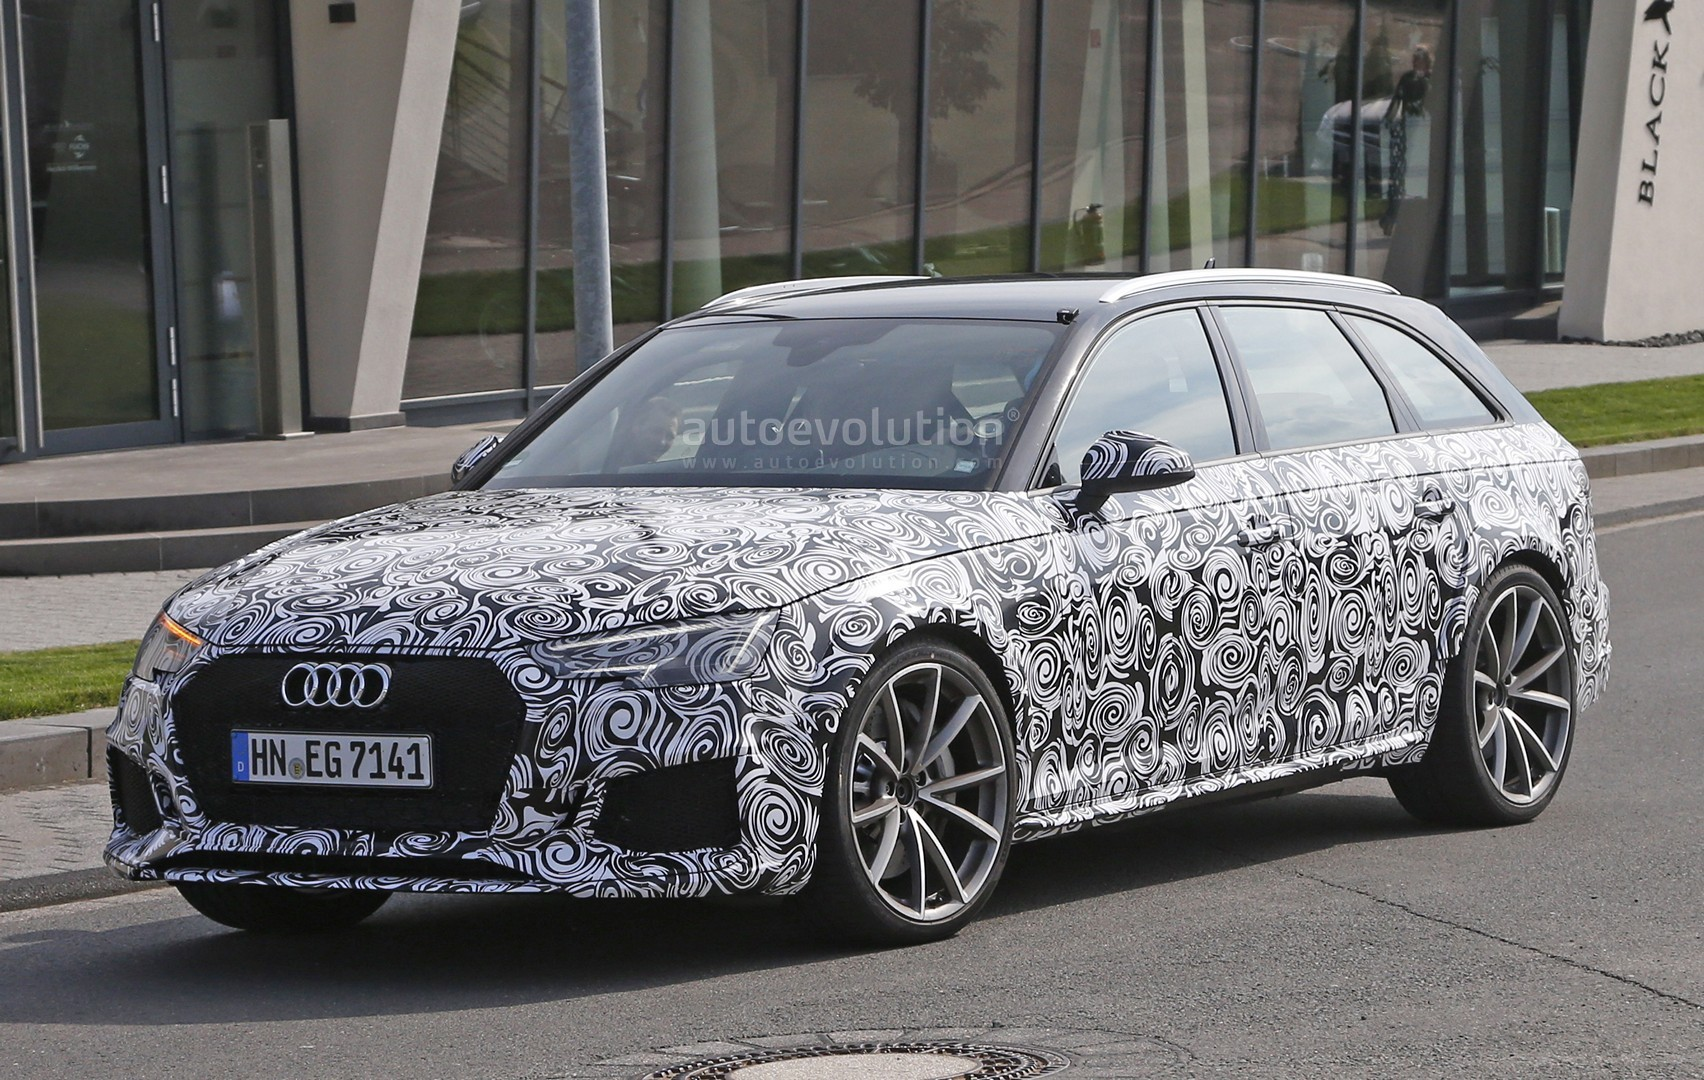 Spyshots Audi Rs Avant Prototype Looks Very Muscular